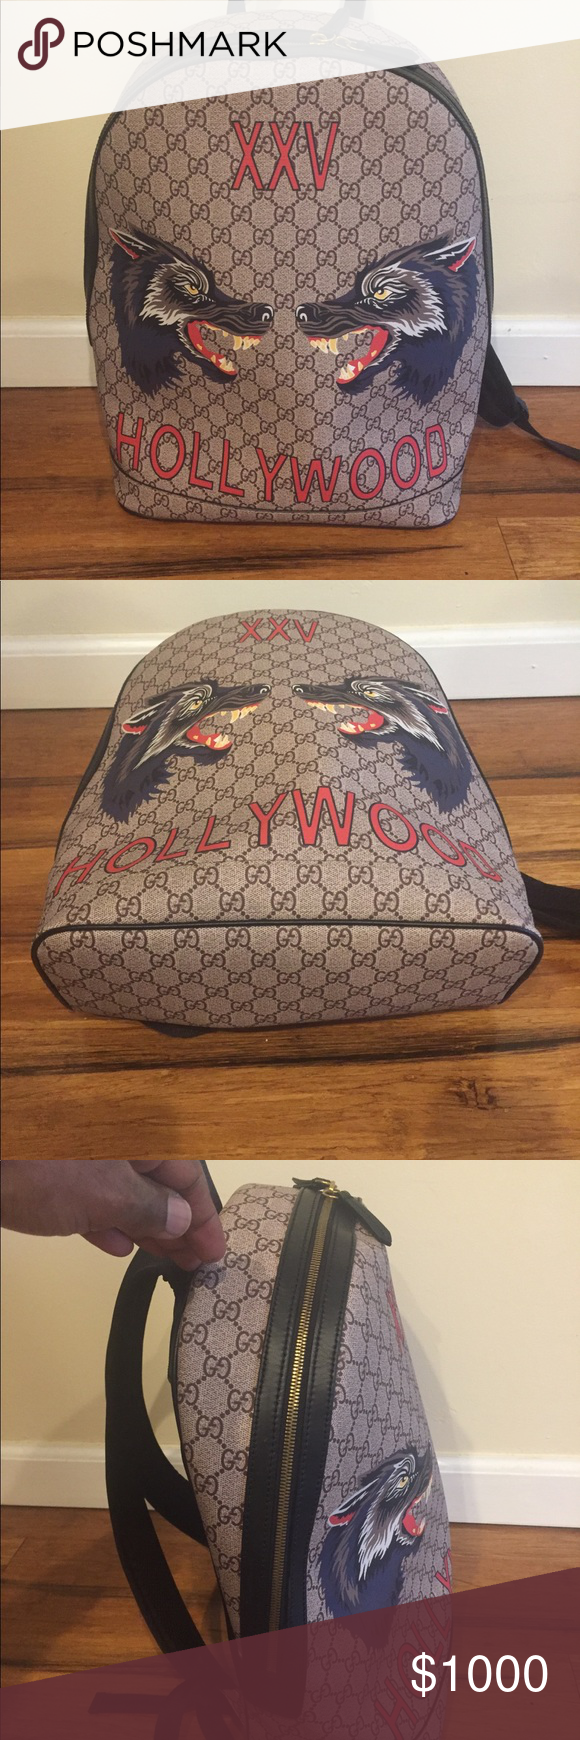 c4213a34f Beige GG Supreme XXV Hollywood Wolf Backpack Worn once Gucci Bags Backpacks